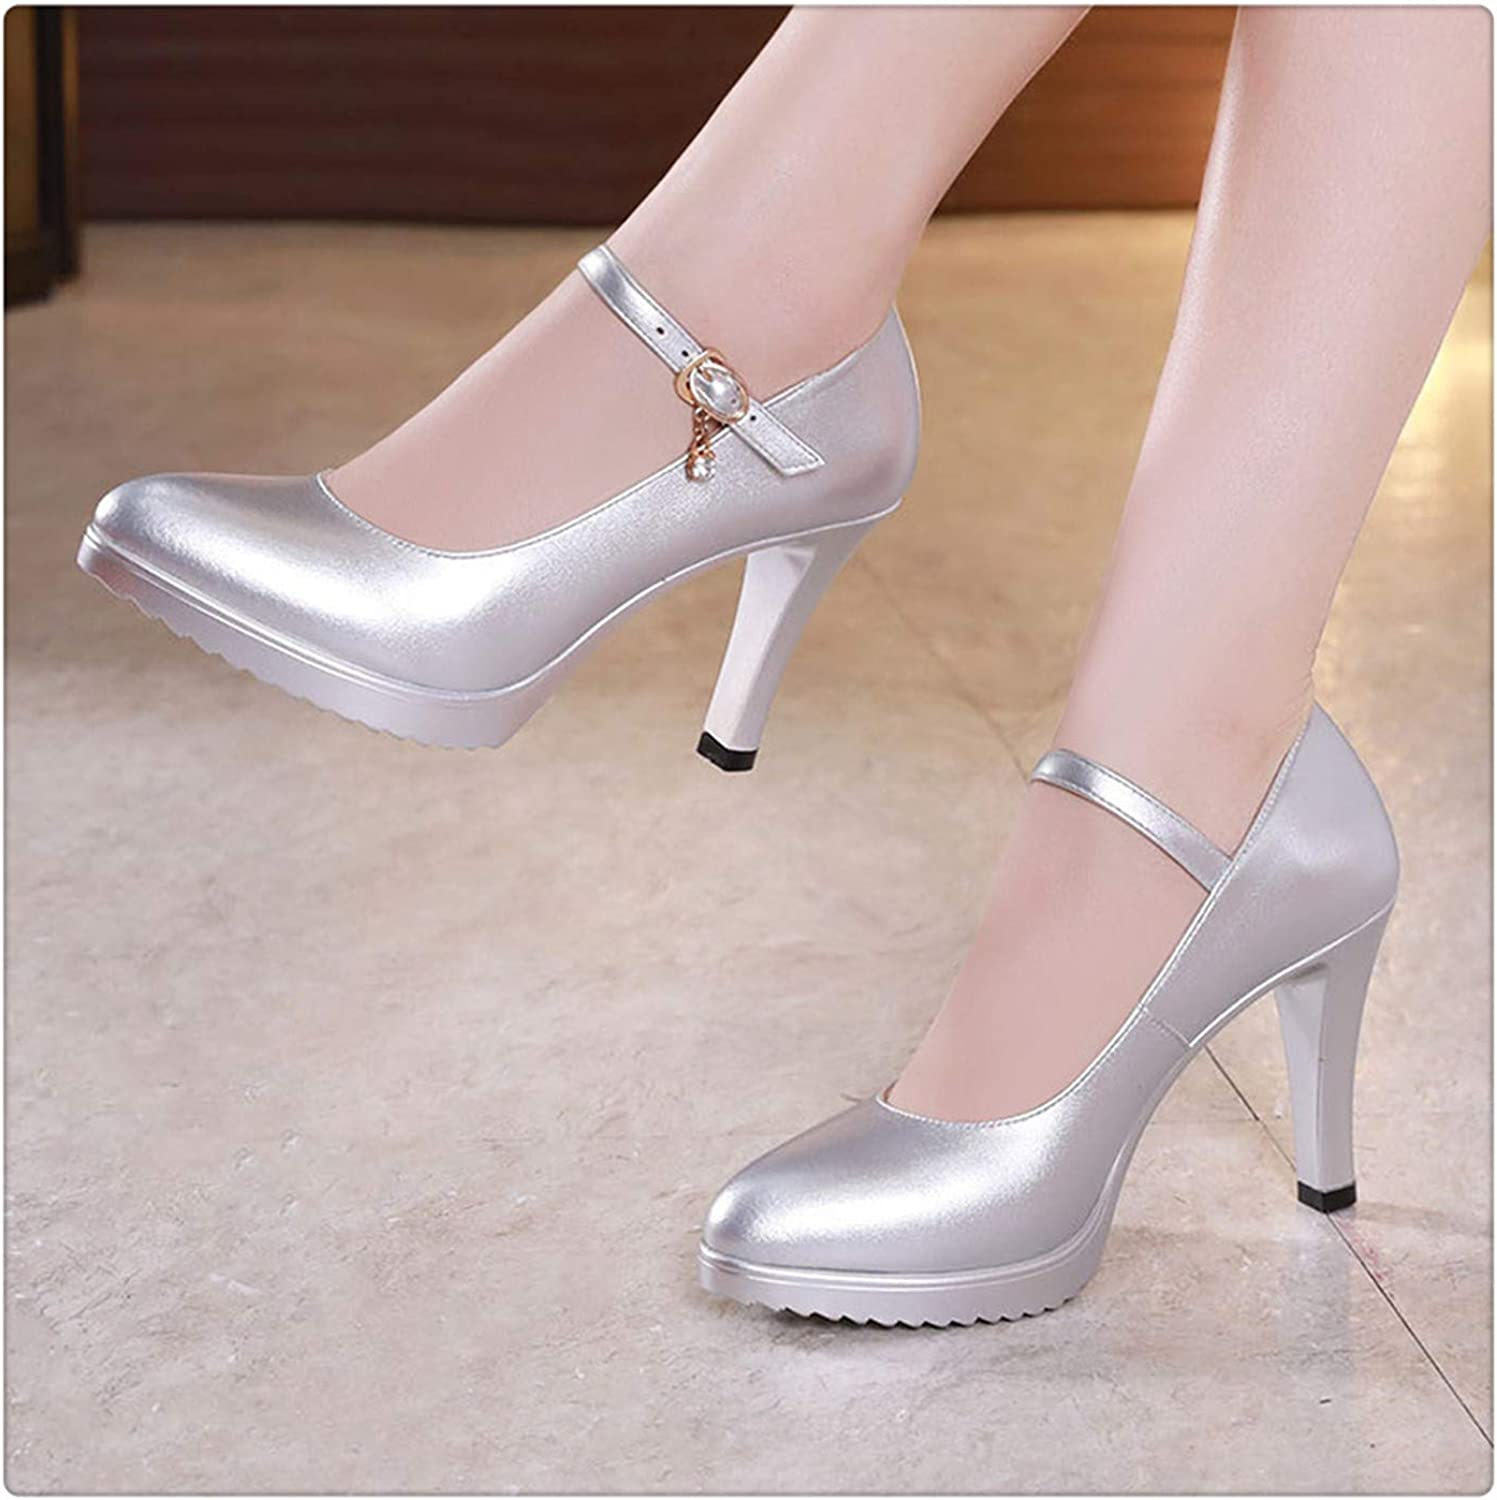 GLOPY& Pointed Toe Women Genuine Leather shoes for Wedding Women Platform Pumps with High Heels shoes for Office Work shoes Silver8CM 4